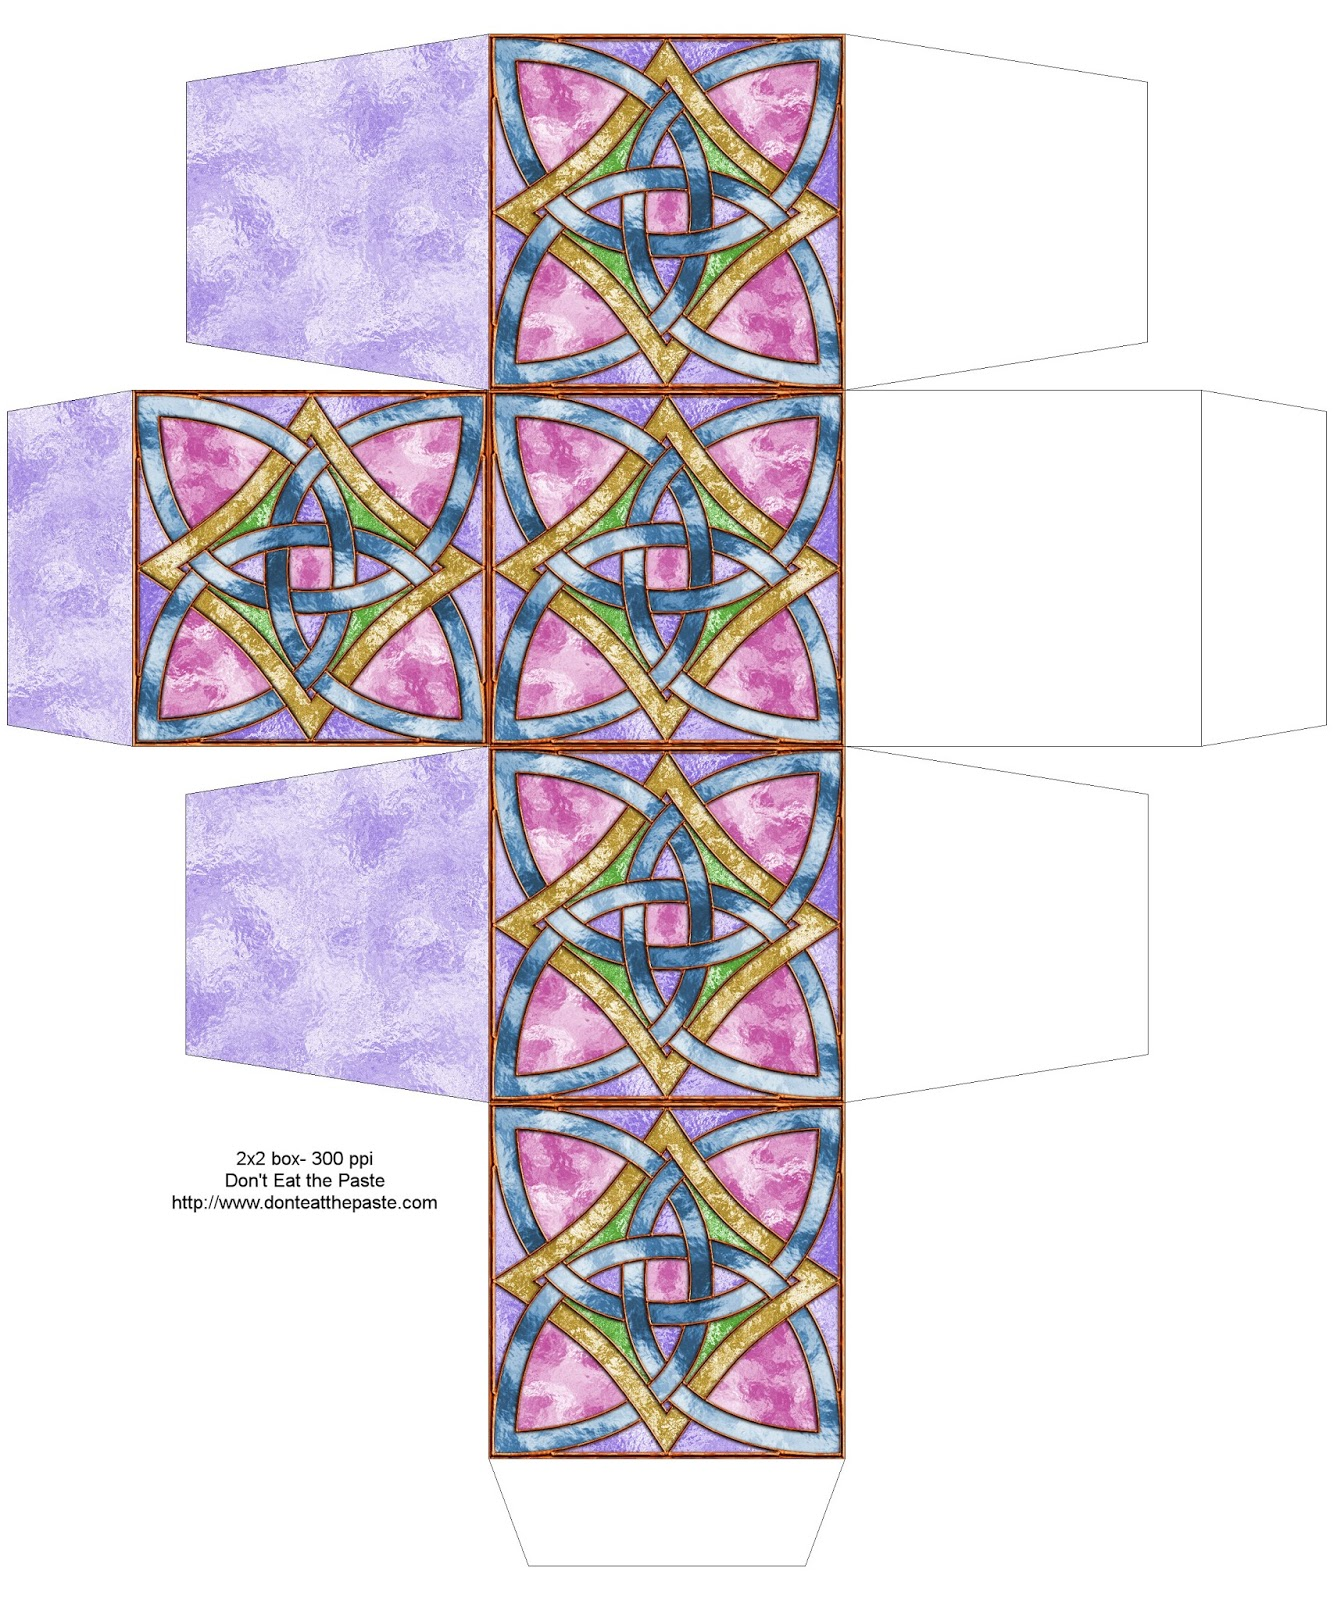 Stained glass effect knot box to print and make #papercrafts